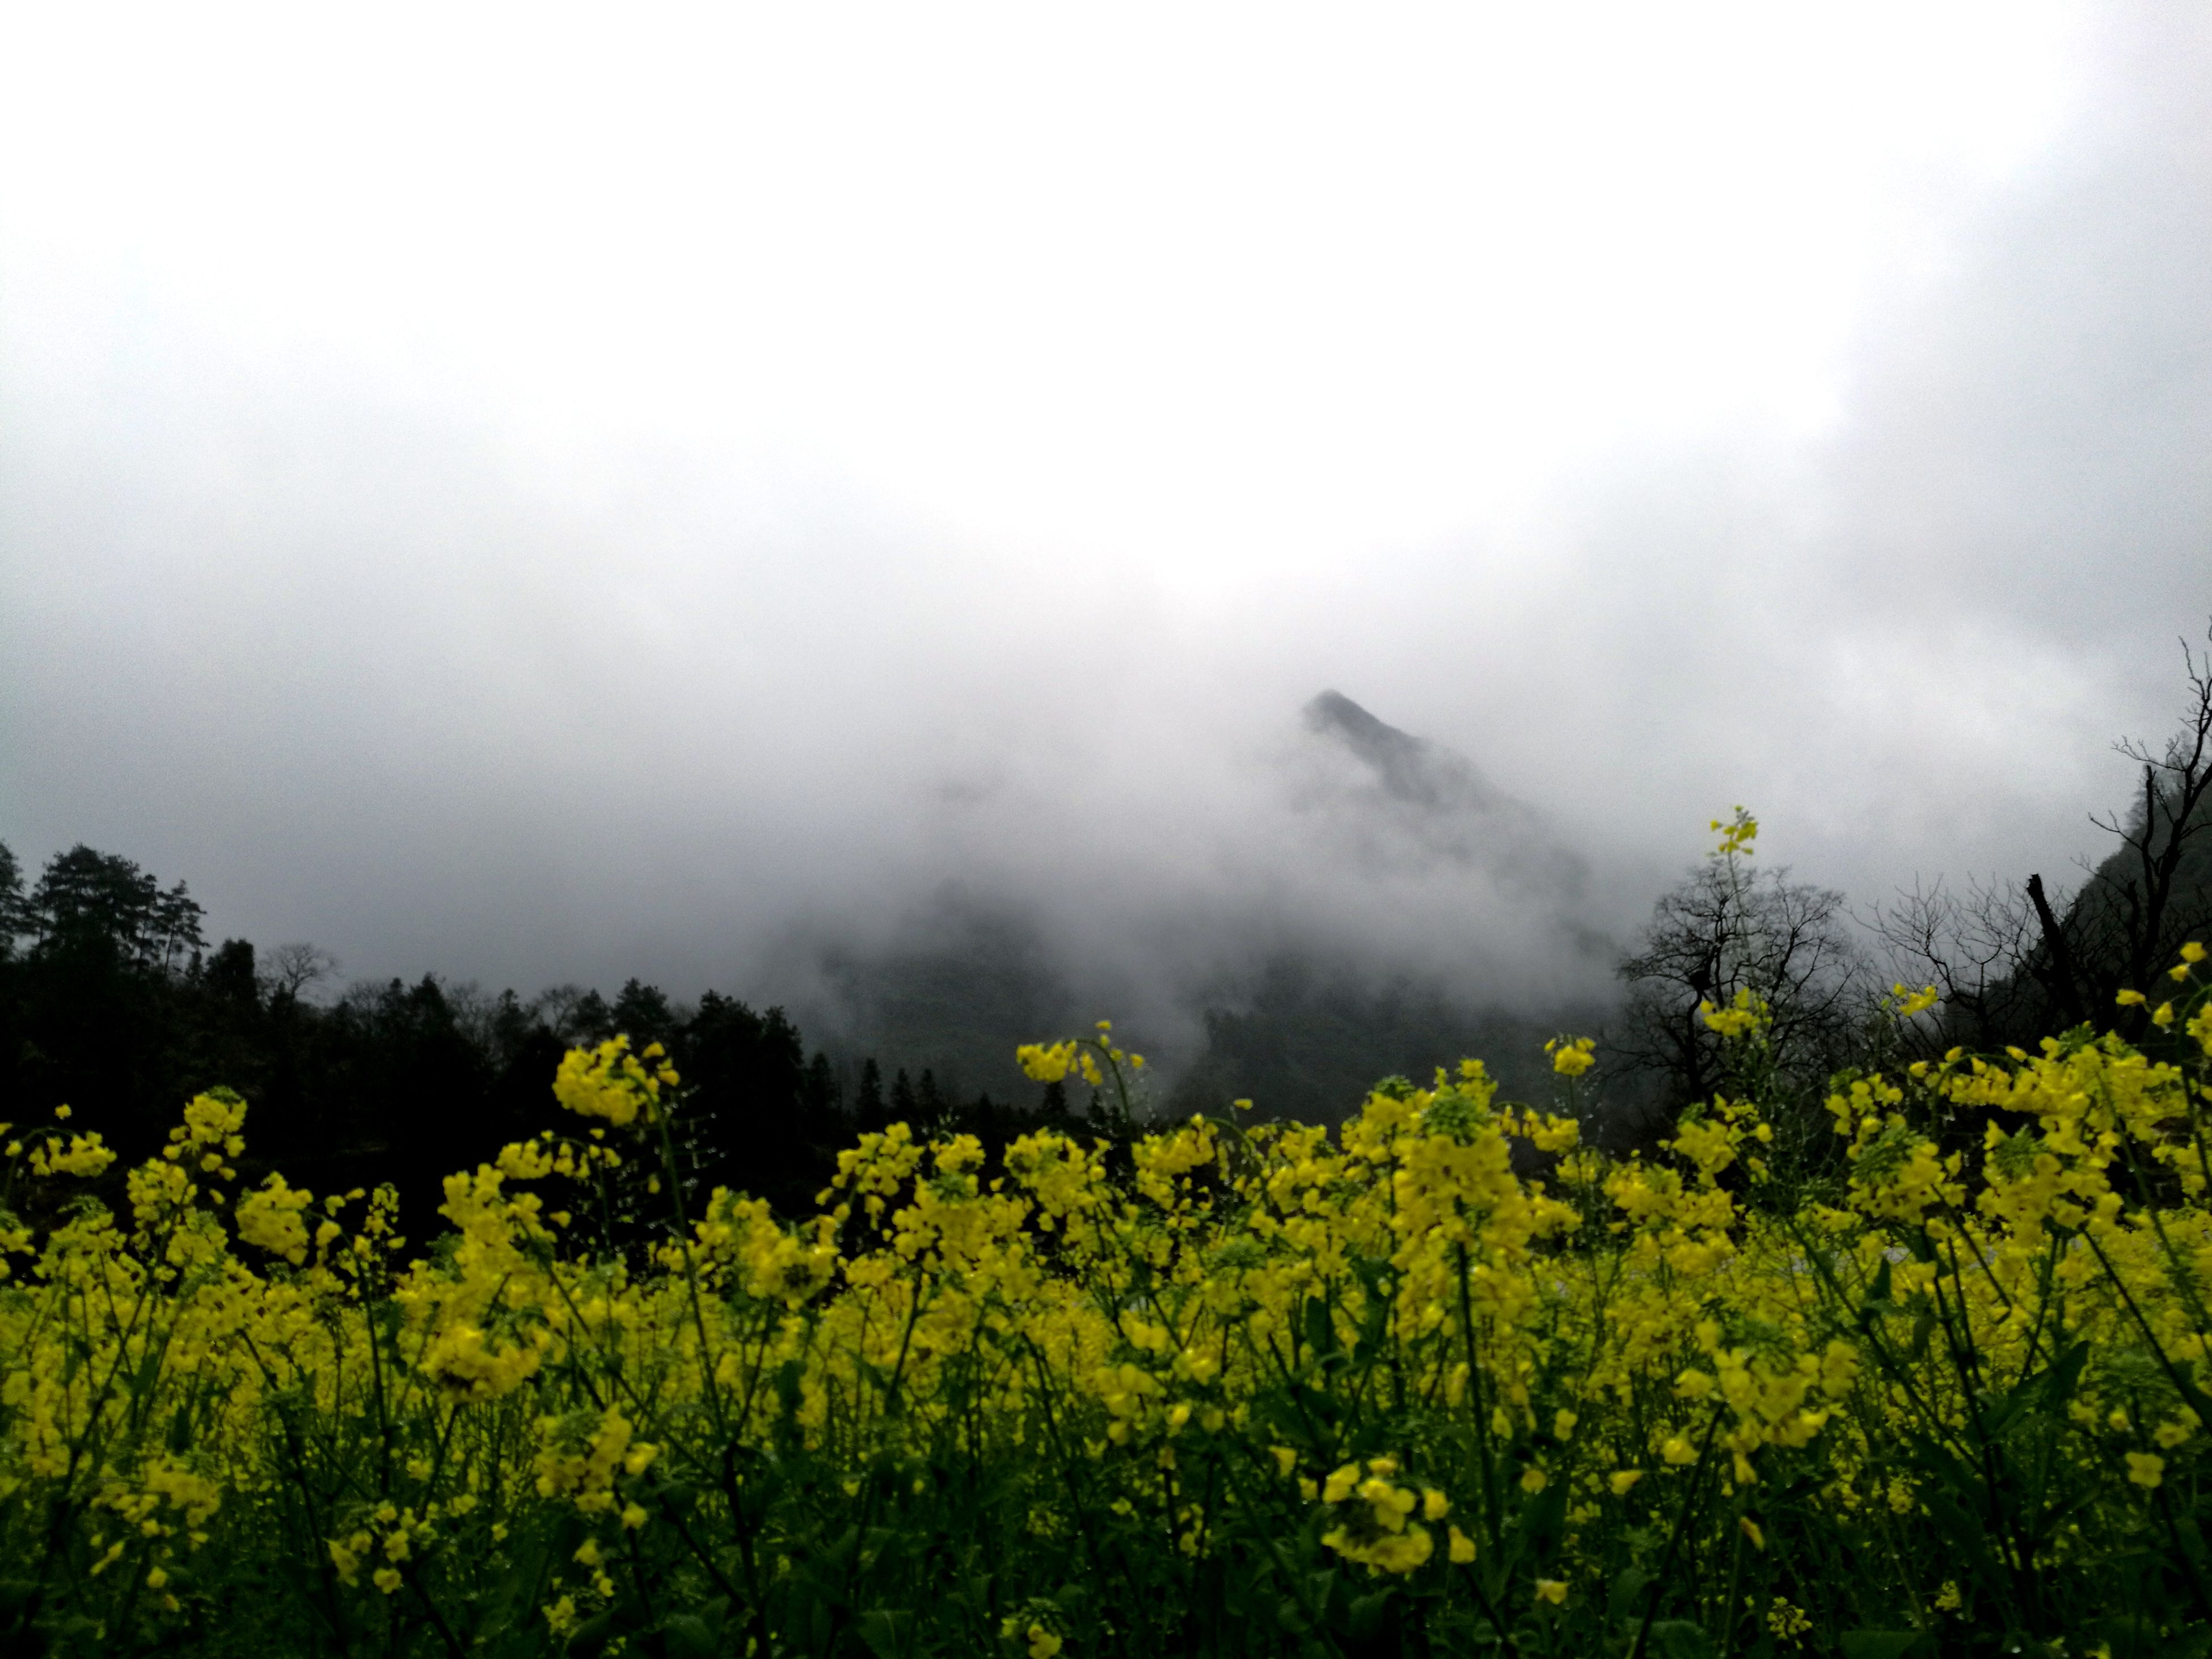 nature, tree, beauty in nature, growth, tranquility, fog, no people, yellow, outdoors, day, sky, oilseed rape